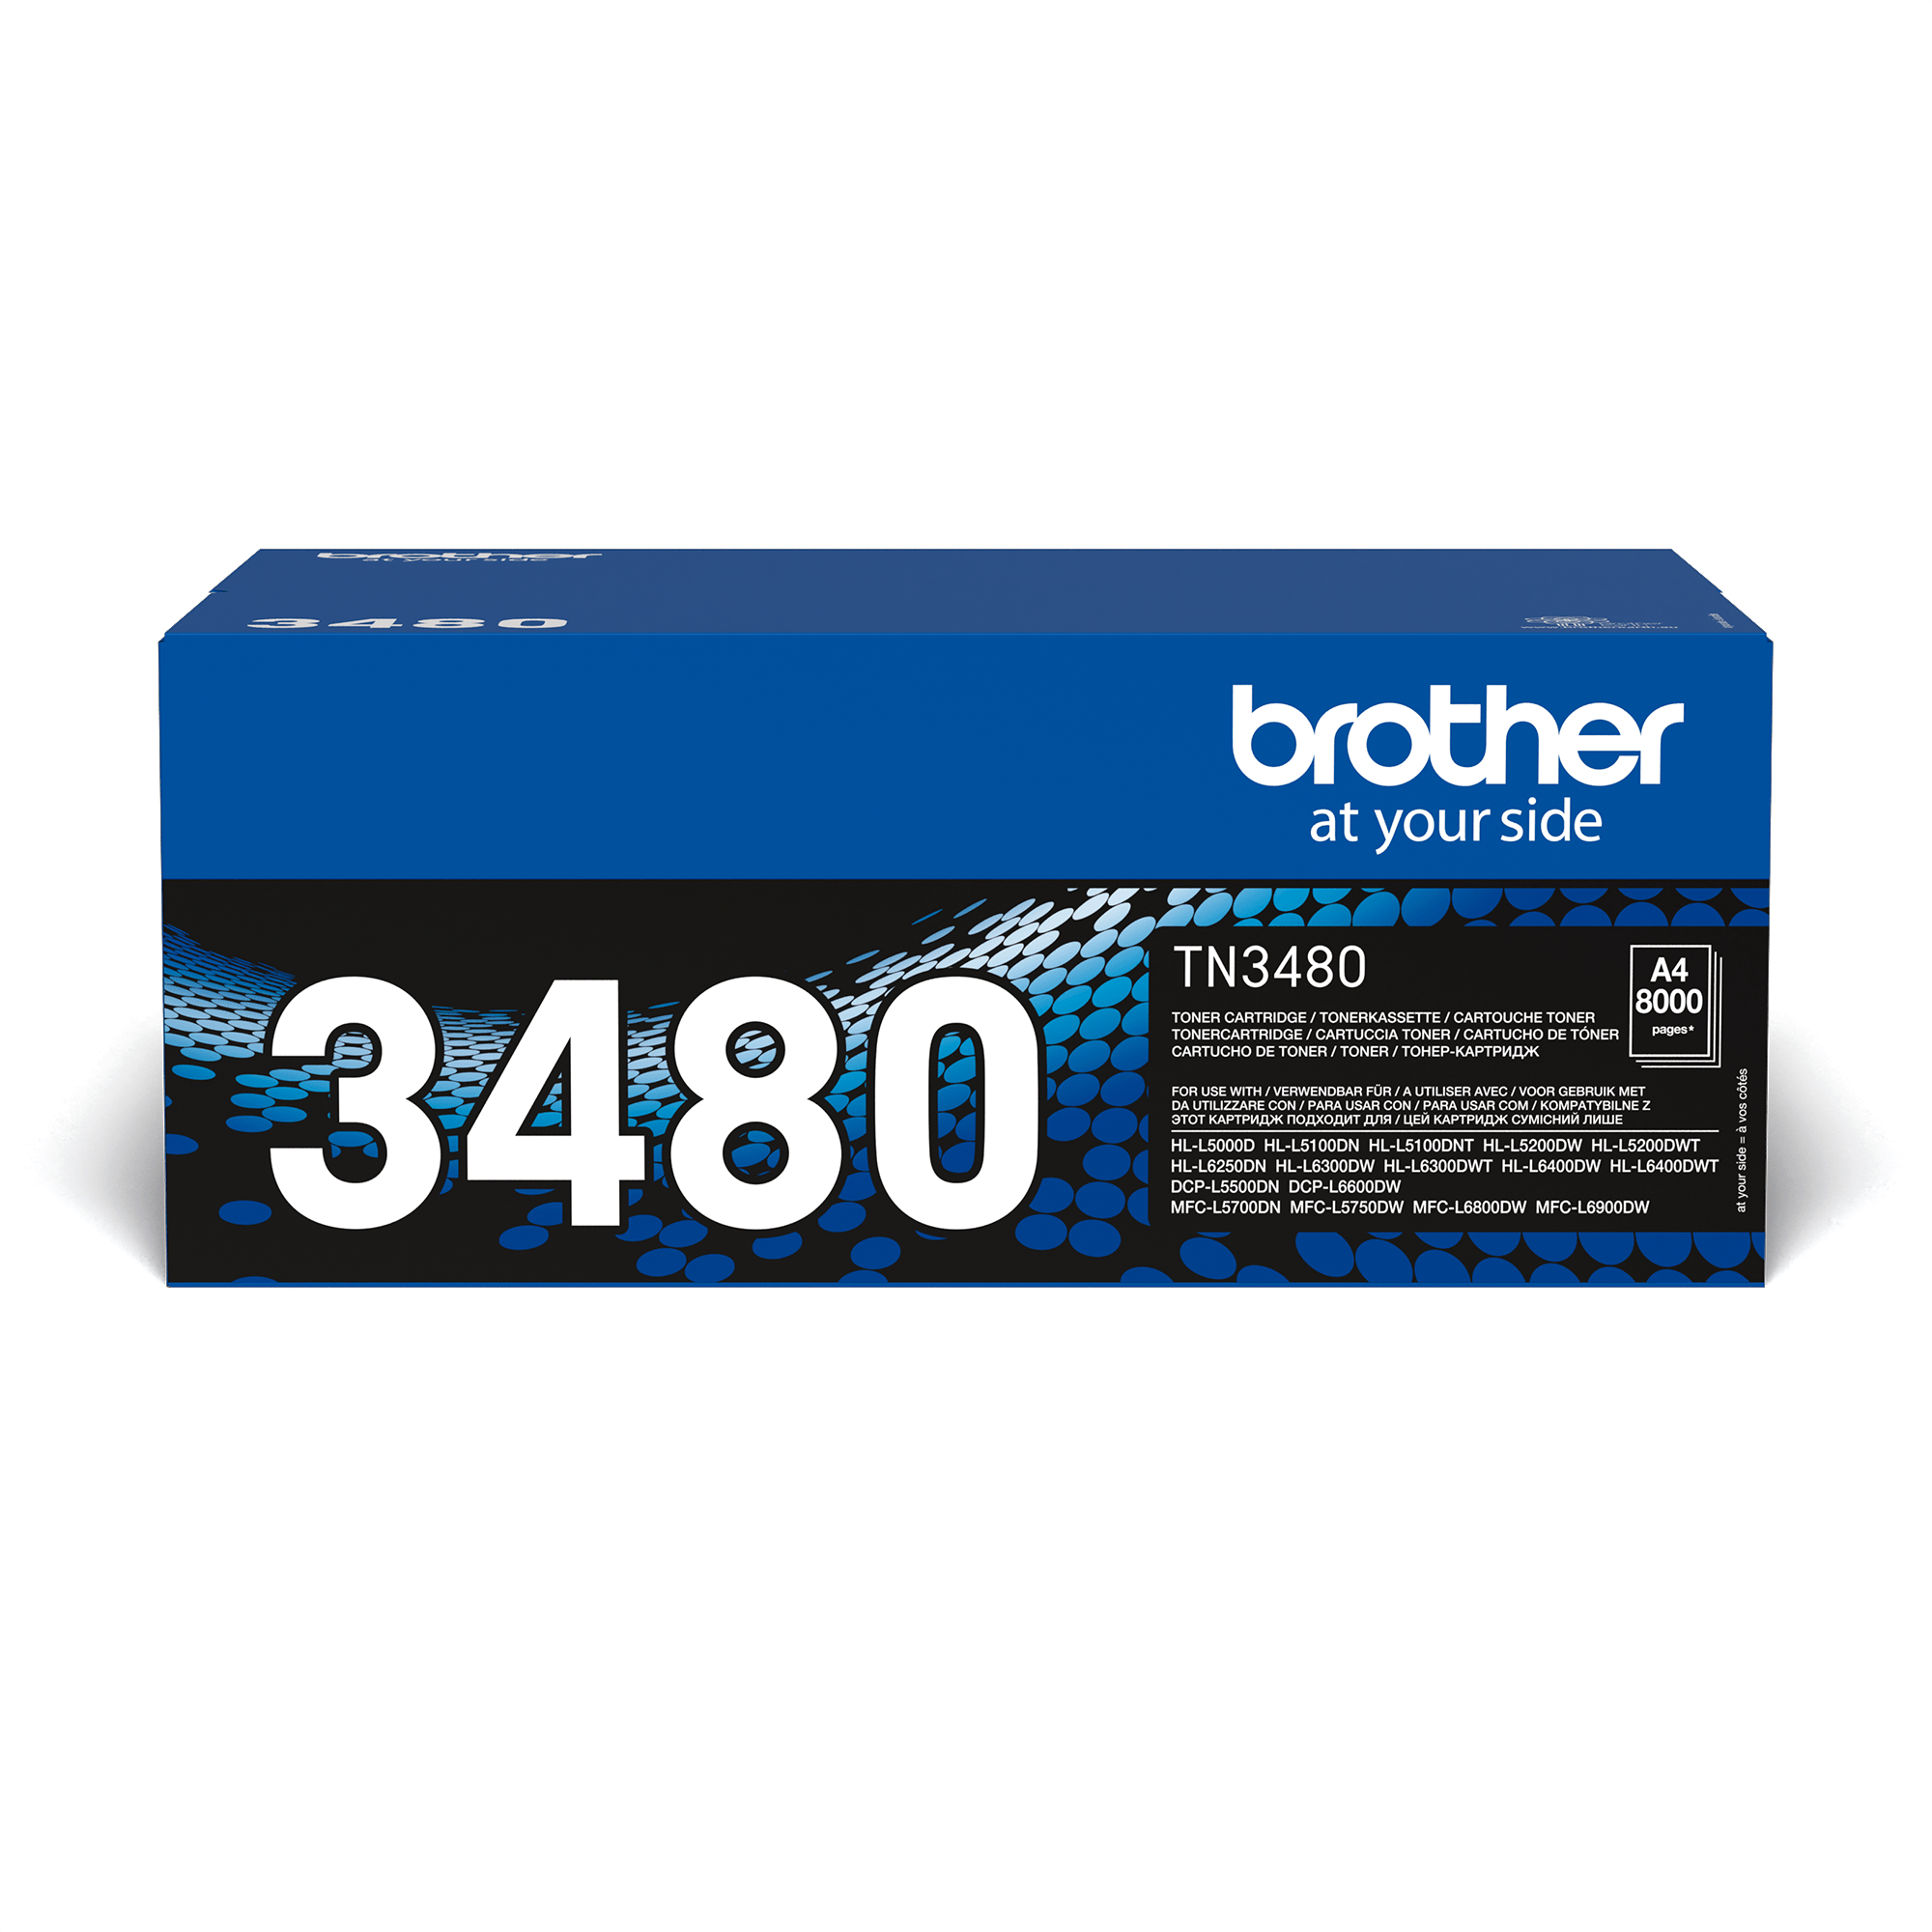 Оригинална тонер касета Brother TN3480 – черен цвят